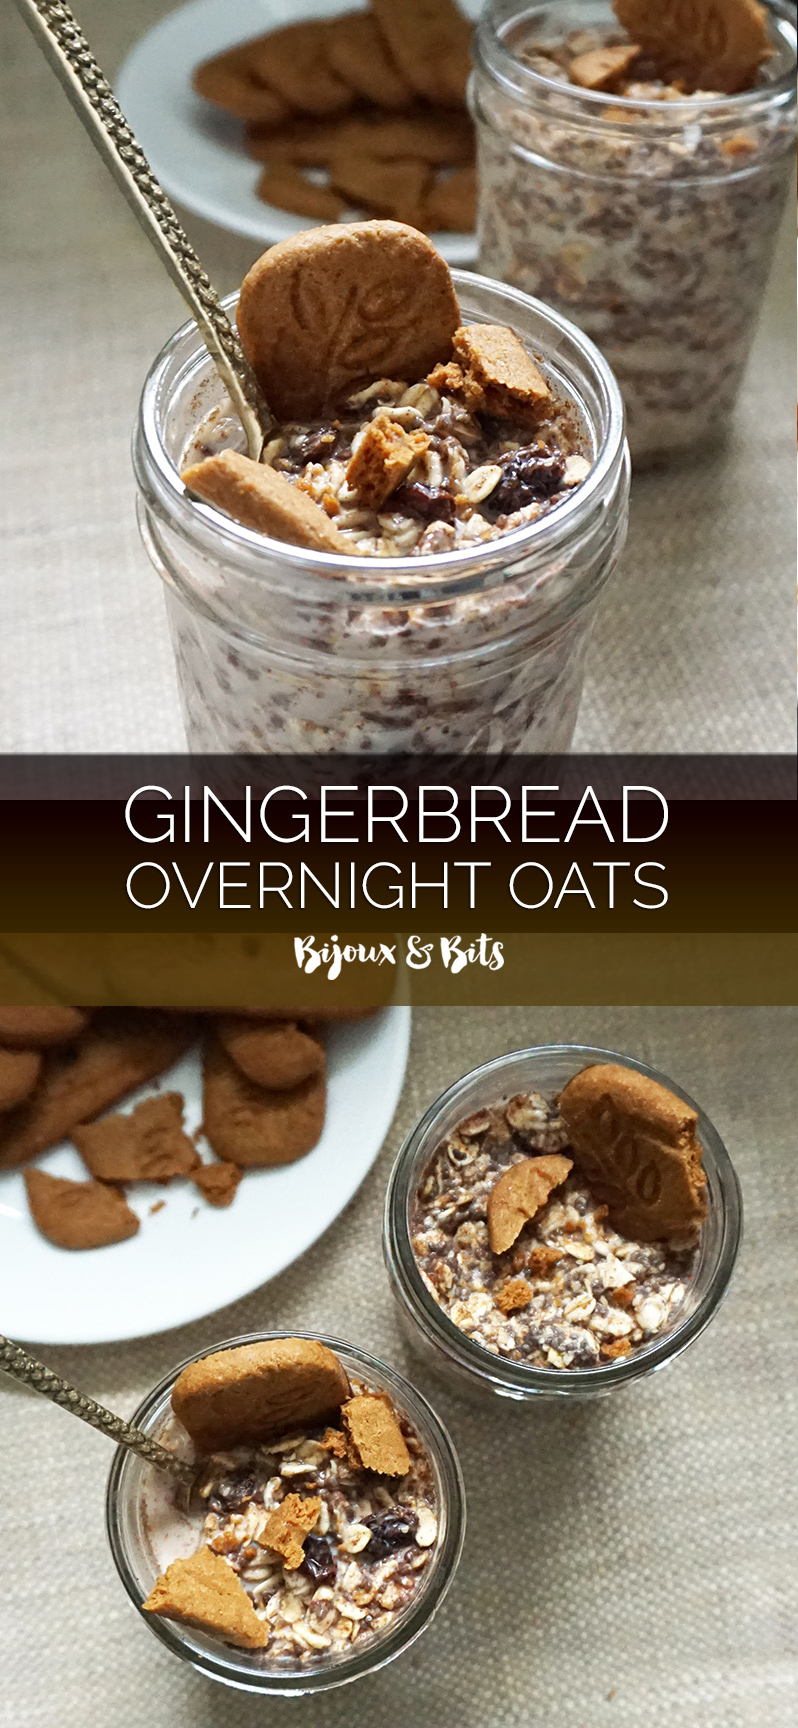 Gingerbread overnight oats from @bijouxandbits